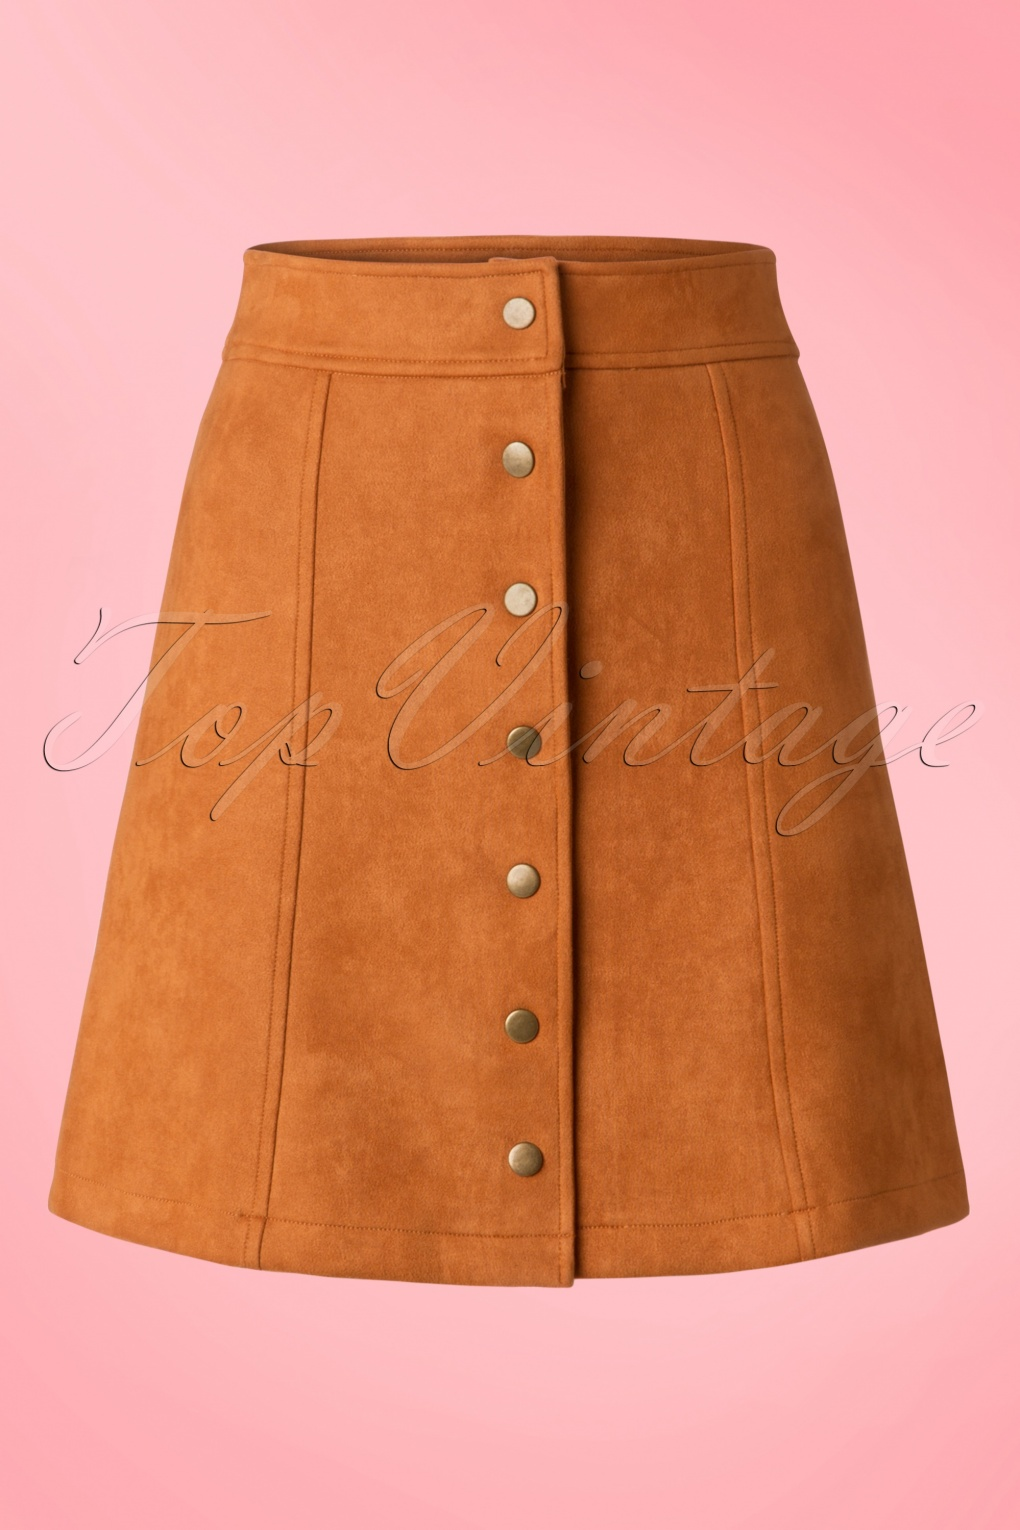 Retro Skirts: Vintage, Pencil, Circle, & Plus Sizes 70s India A-Line Skirt in Rust £33.73 AT vintagedancer.com